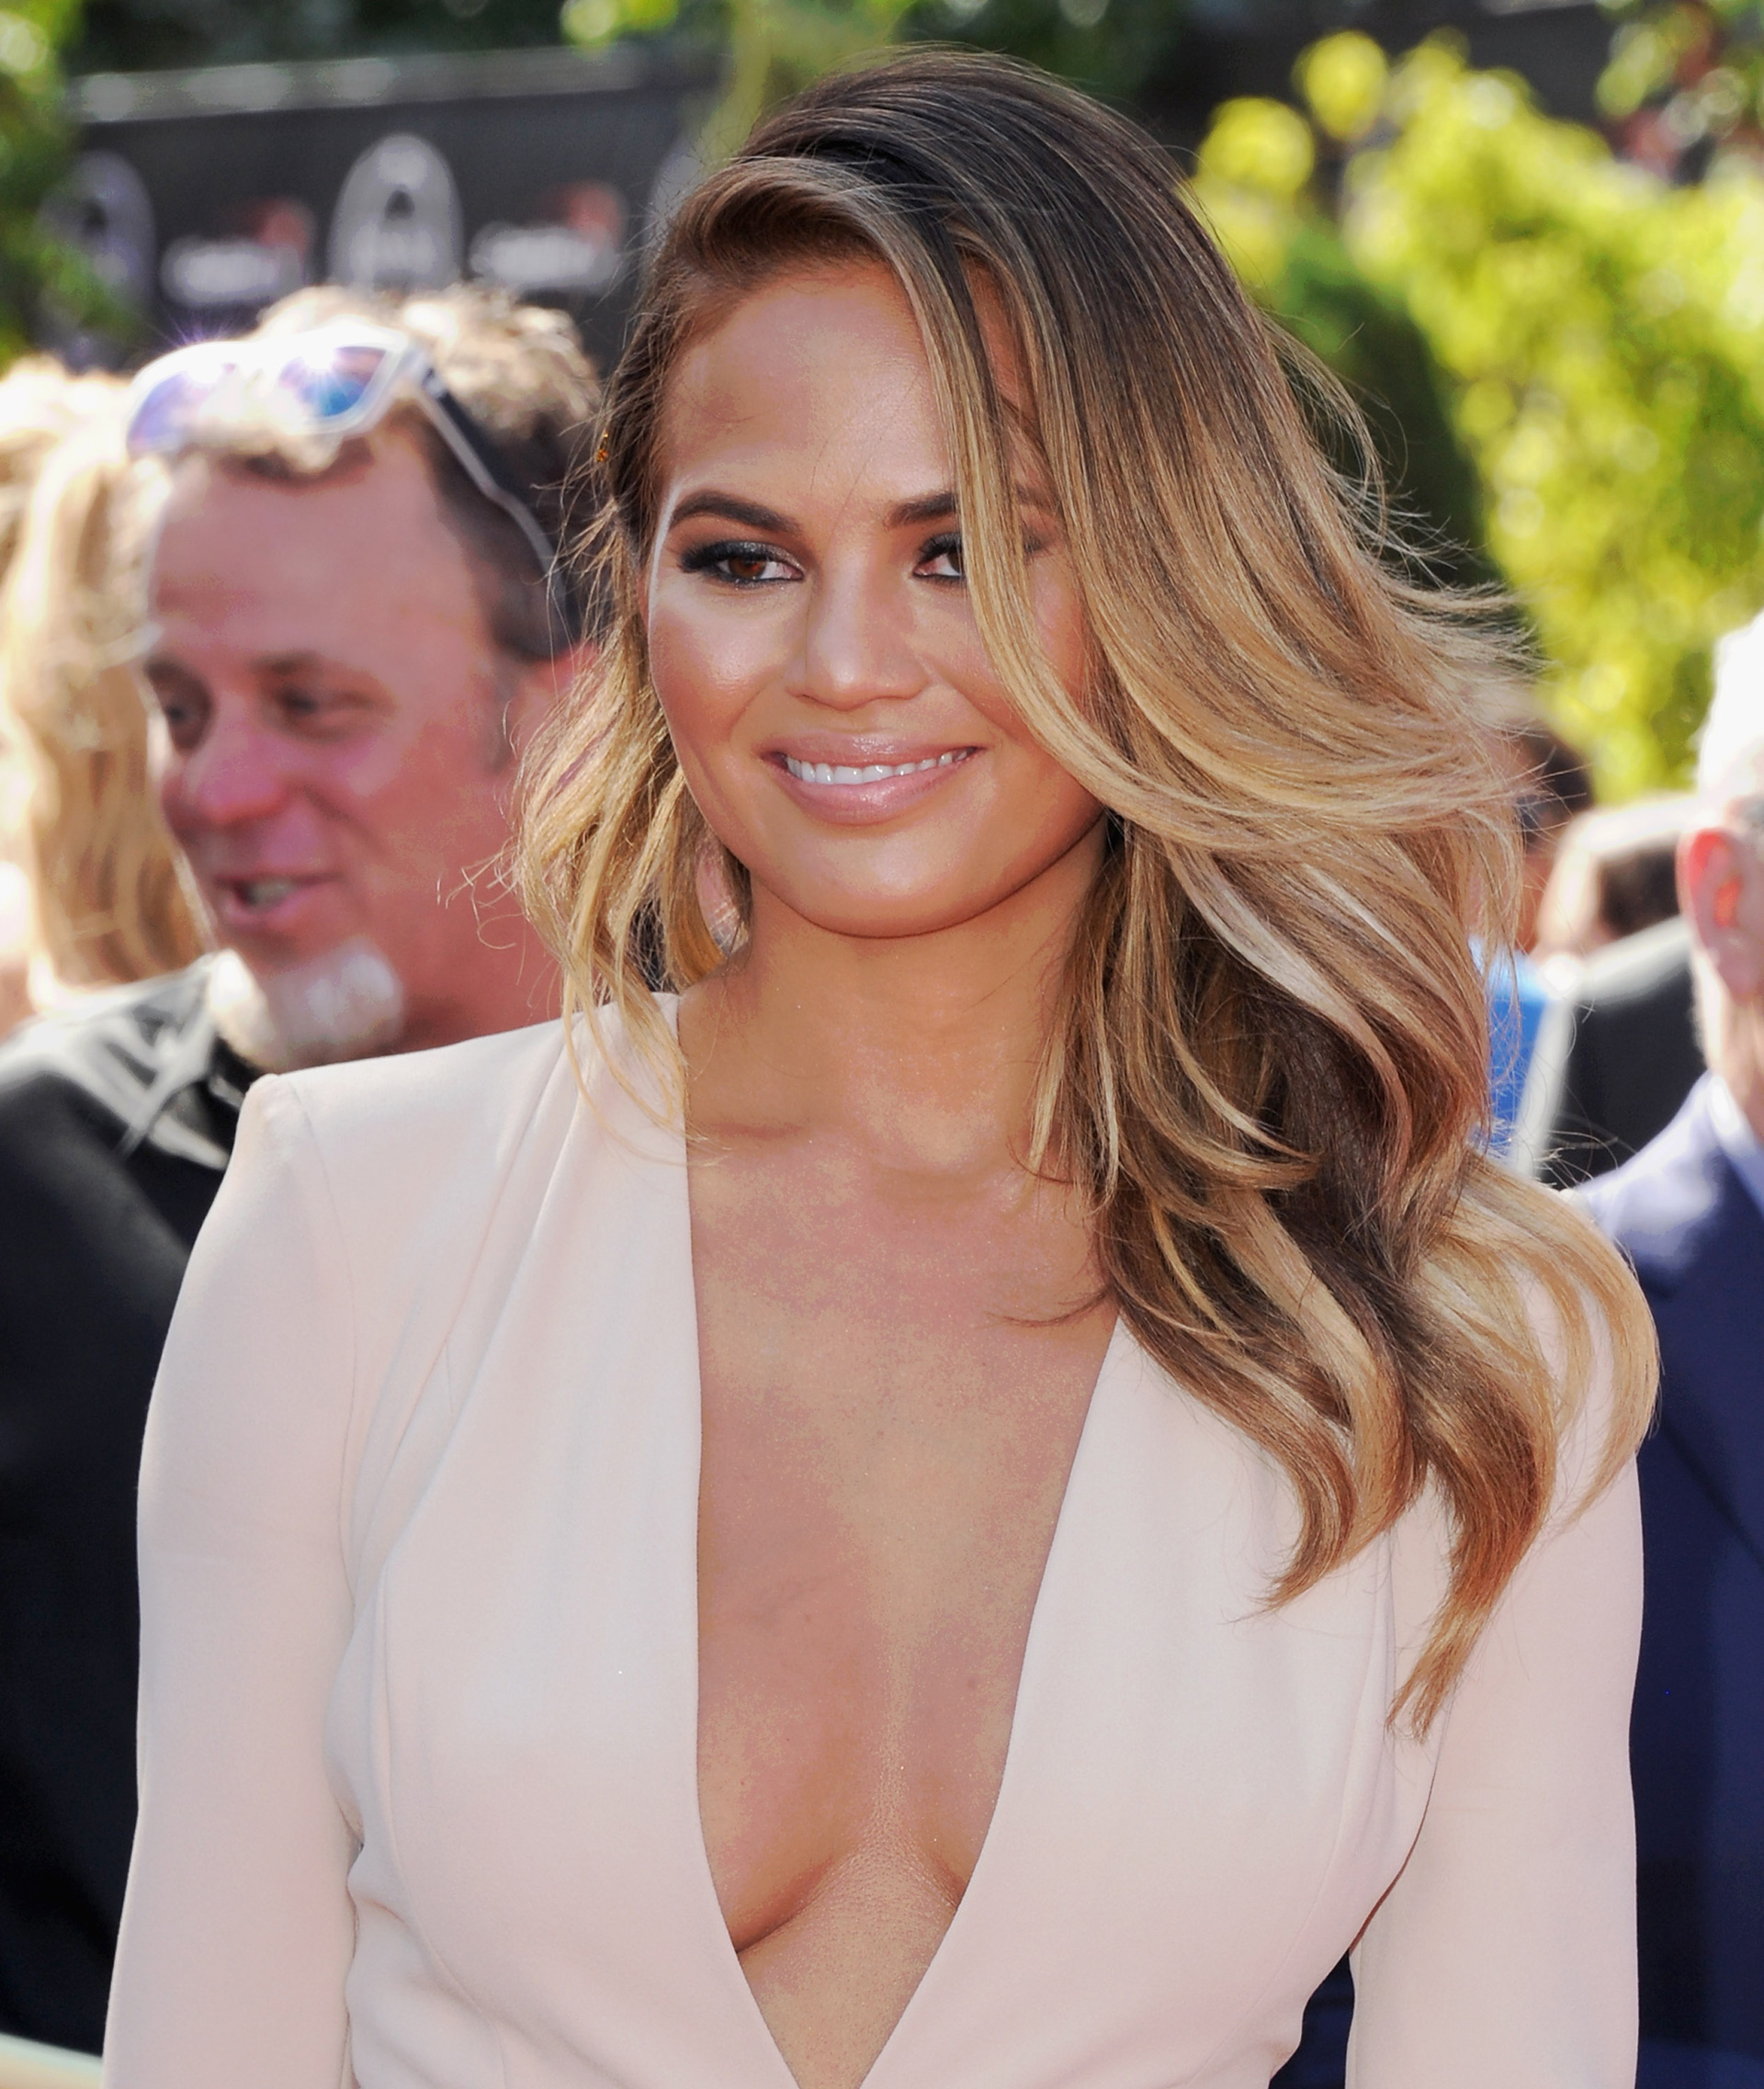 Chrissy Teigen at the 2014 Espy Awards